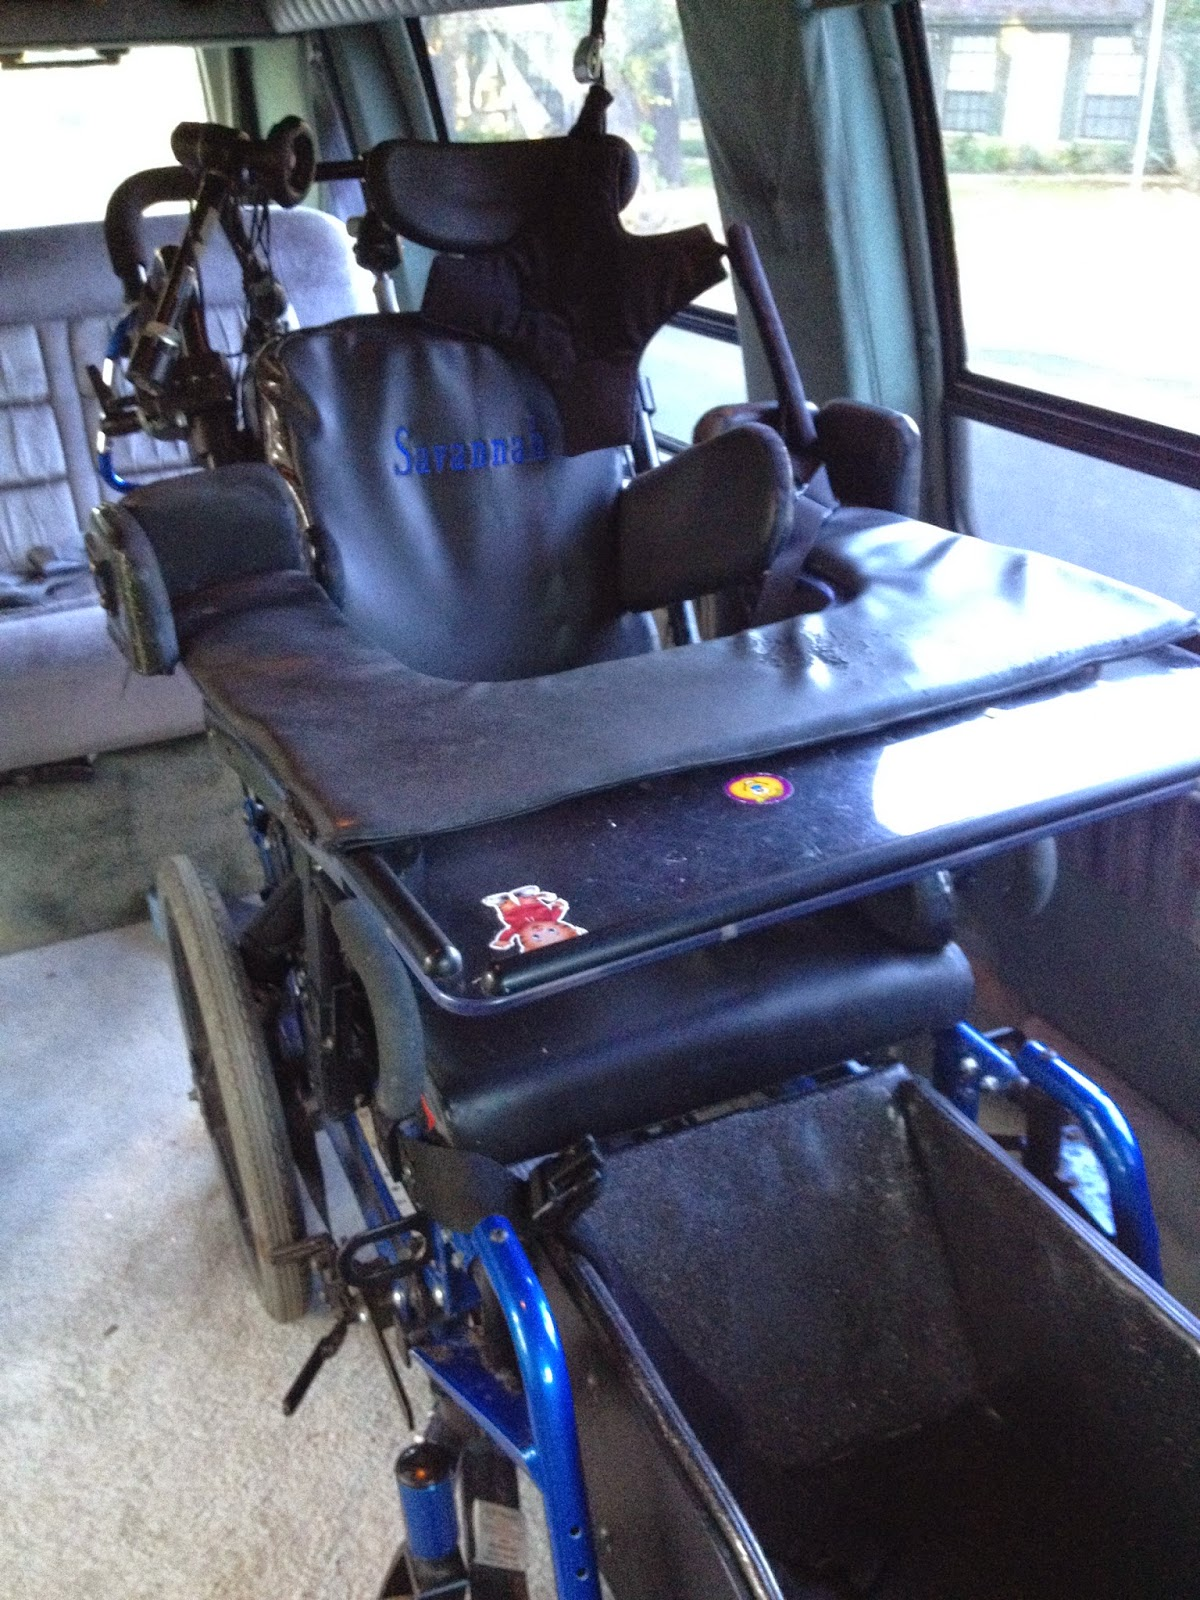 Savannah's empty wheelchair goes with us to the Prom in her van.